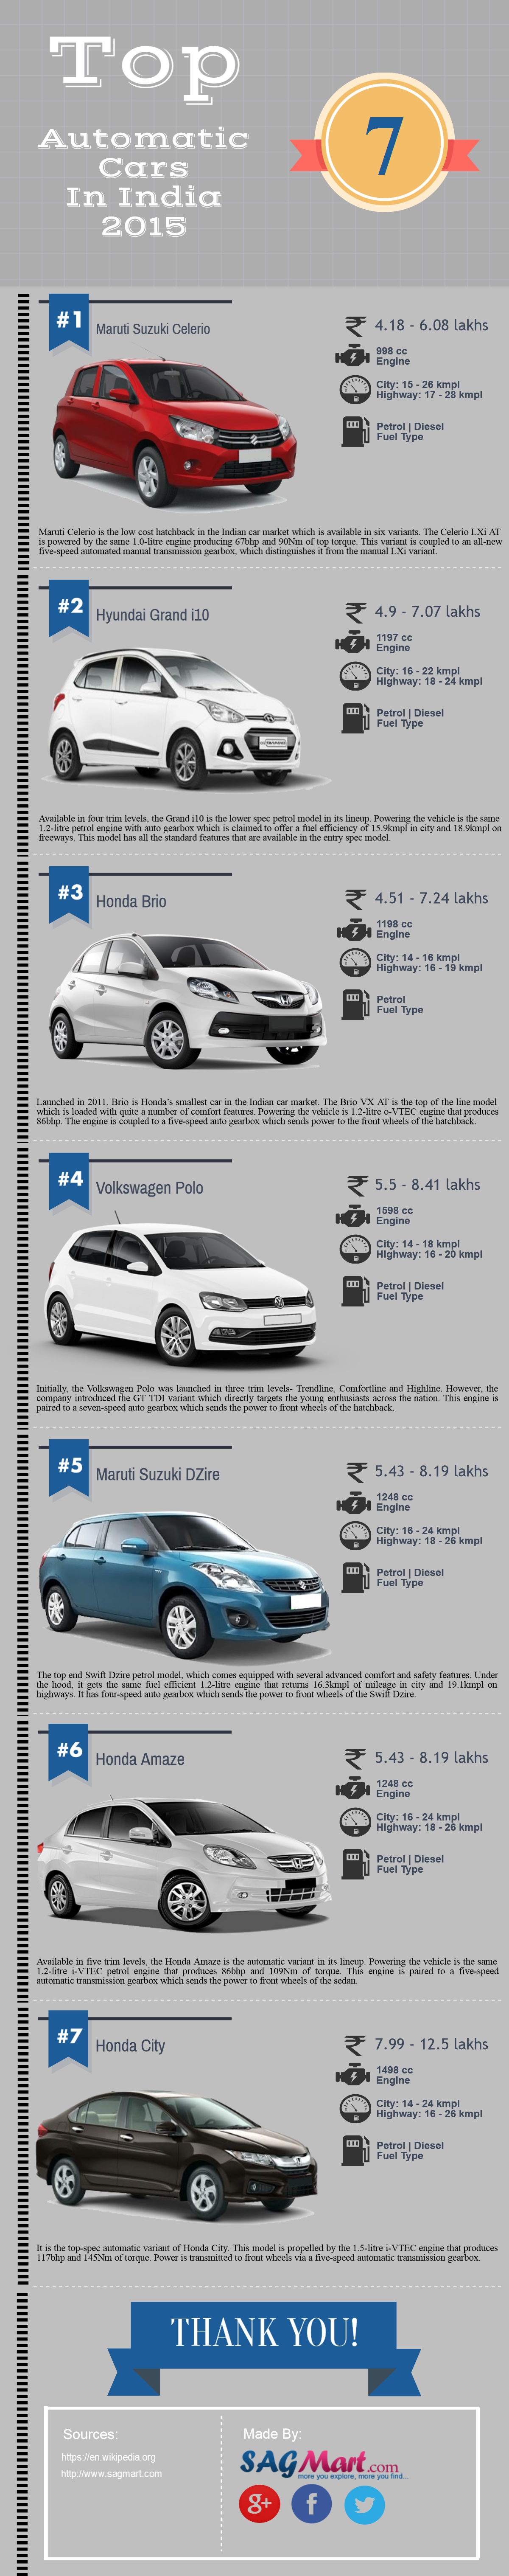 Best Automatic cars in india 2015-16 - Infographic